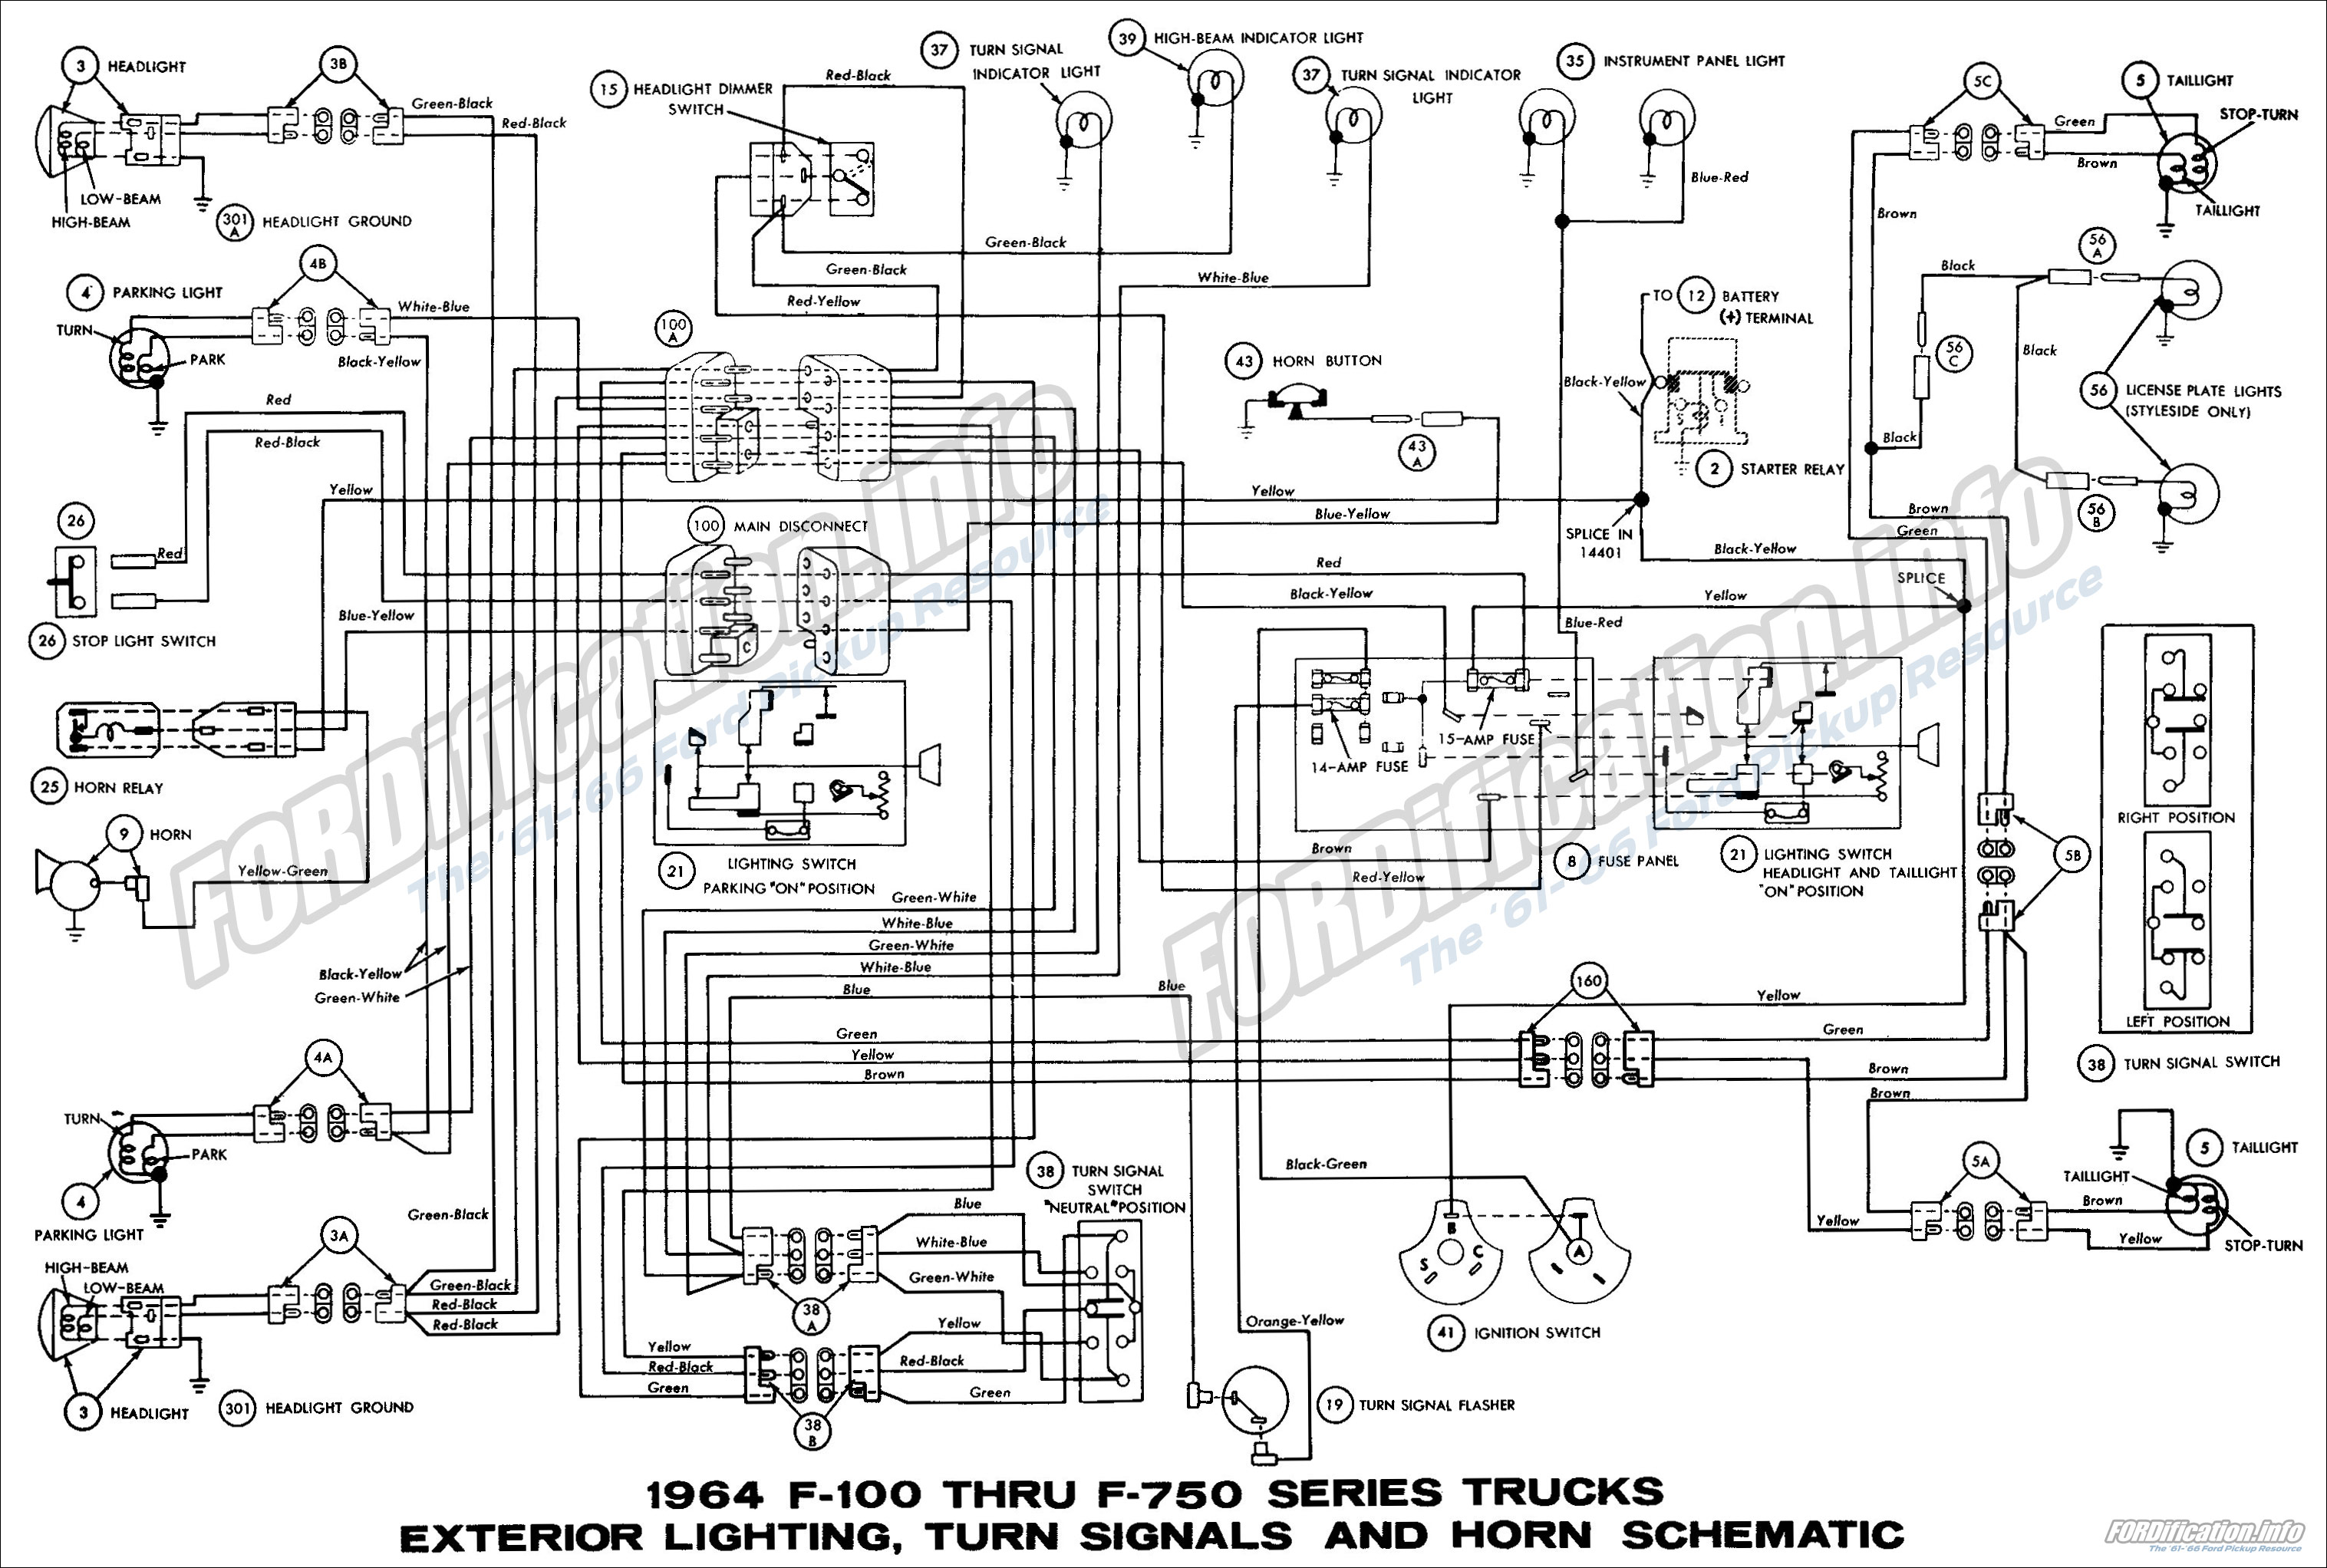 1996 ford f750 wiring schematic